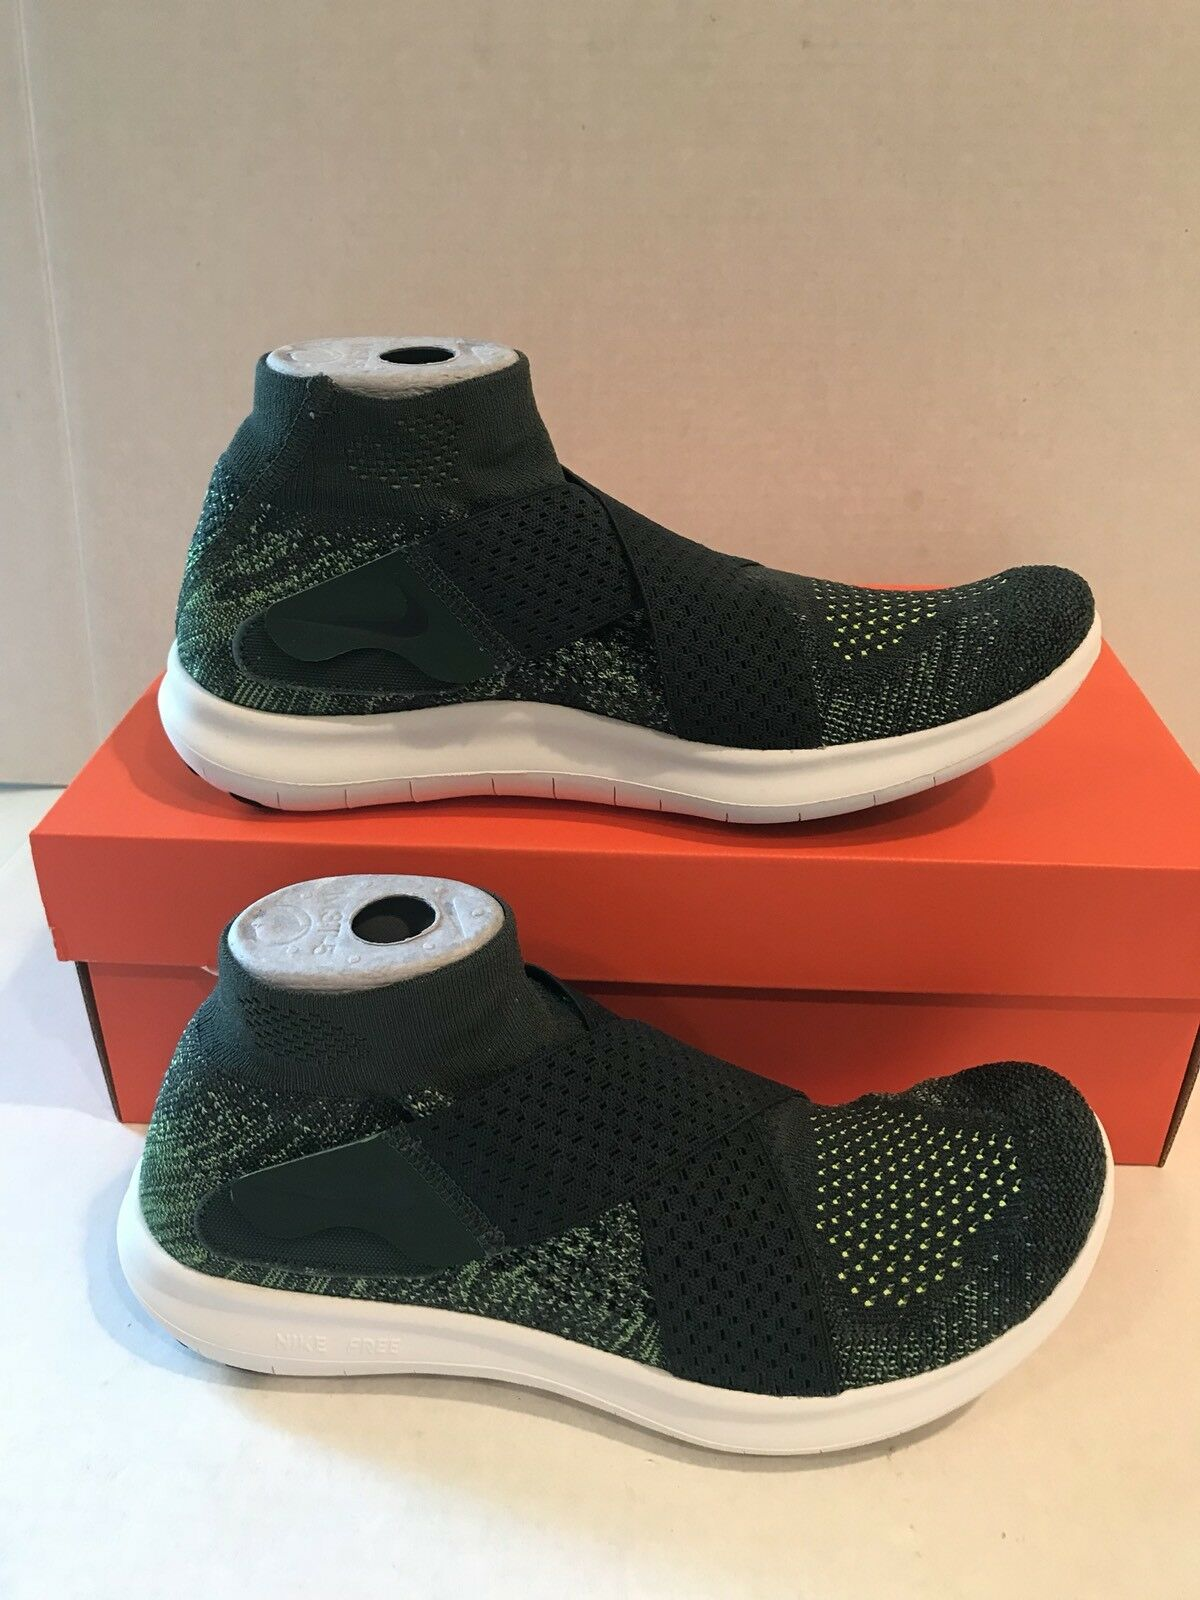 Nike Free RN Motion Flyknit 2017 Running Shoes 880846-301 NEW